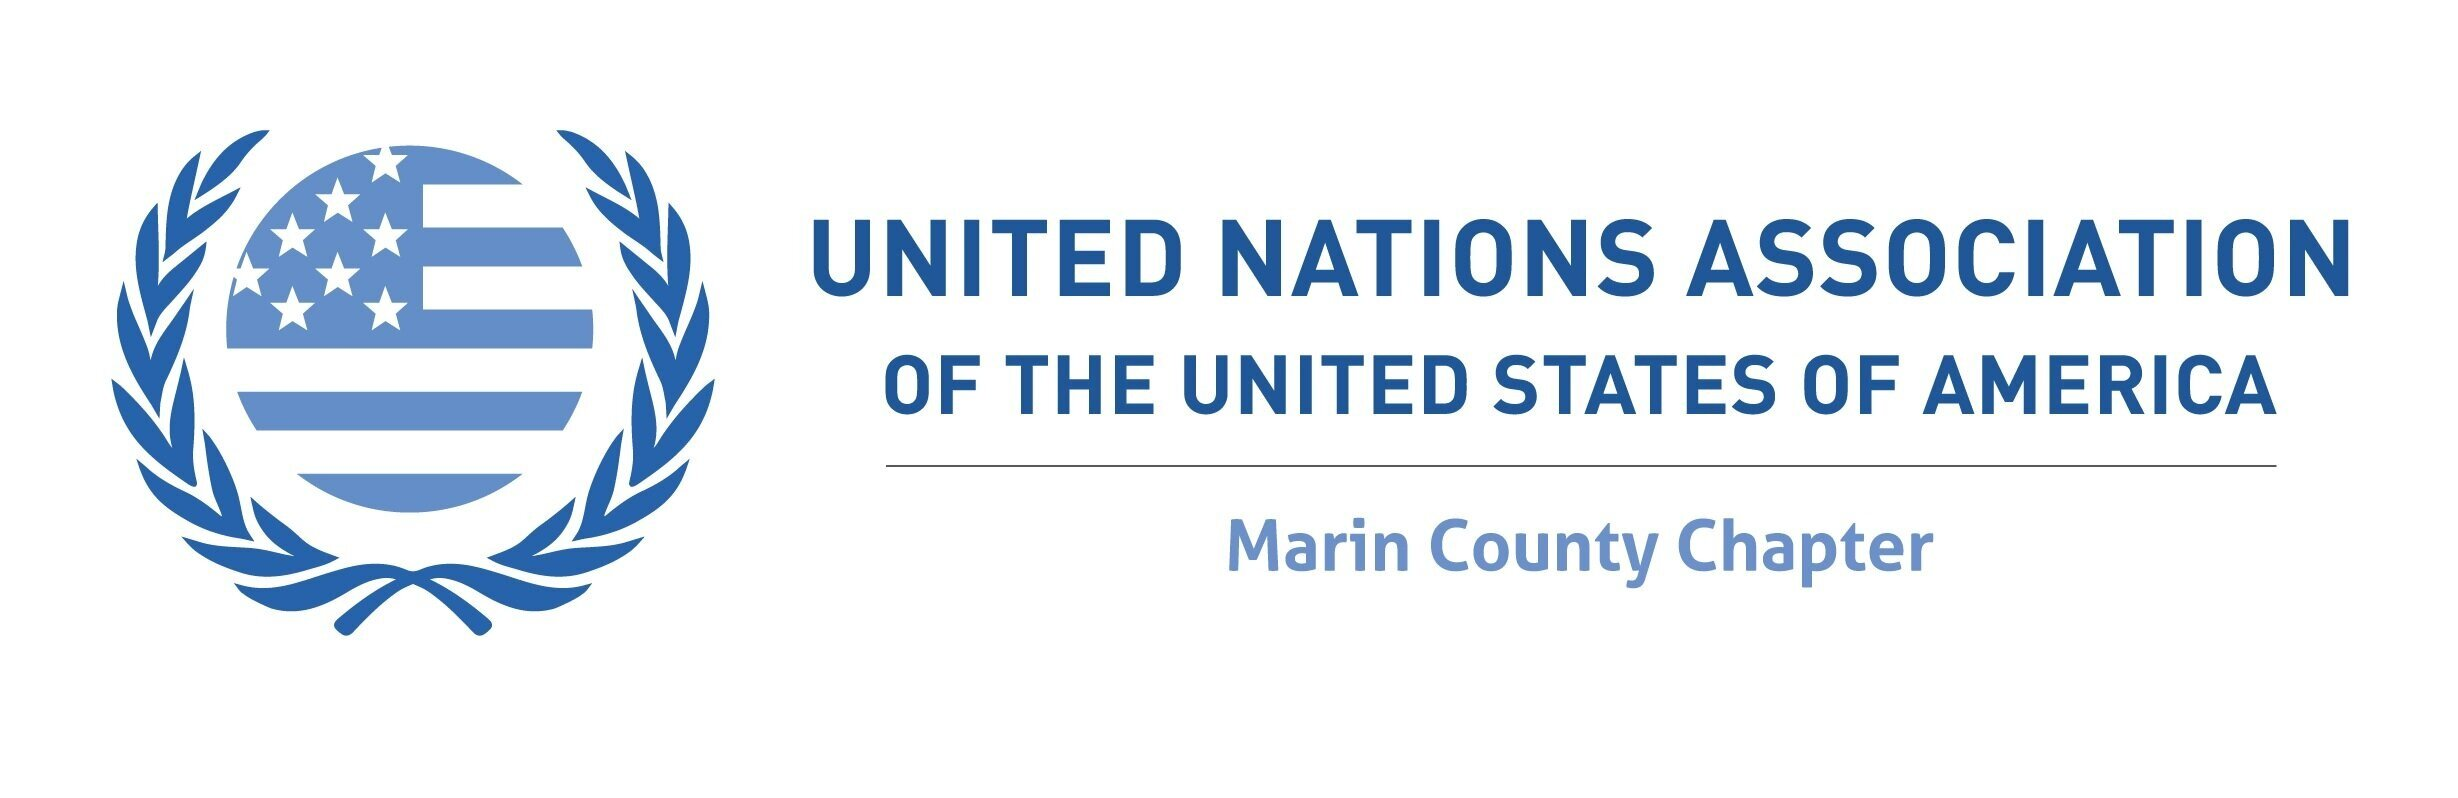 - The UN-Marin promotes the work of the United Nations, including international peace efforts, human rights, and the Sustainable Development Goals (SDGs) of 2030. Felicia Chavez, PhD, MBA is Director of Systems Thinking Marin and President of UNA-Marin. Felicia is promoting a systems thinking approach to local adoption of the SDGs.